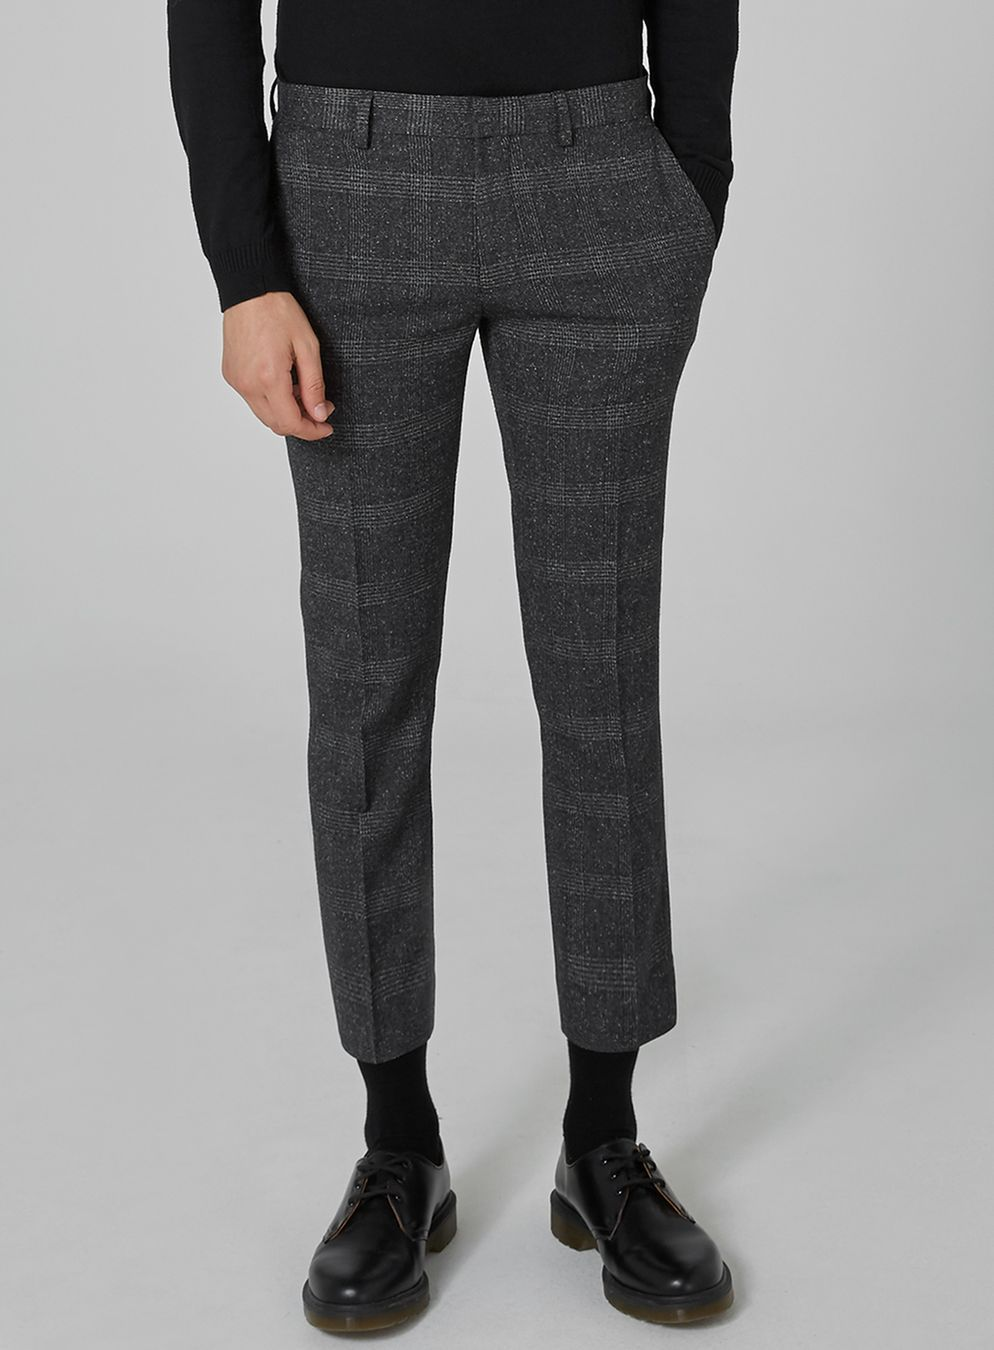 58e38b52fd16 Grey Check Ultra Skinny Trousers | suit | Trousers, Pants, Skinny